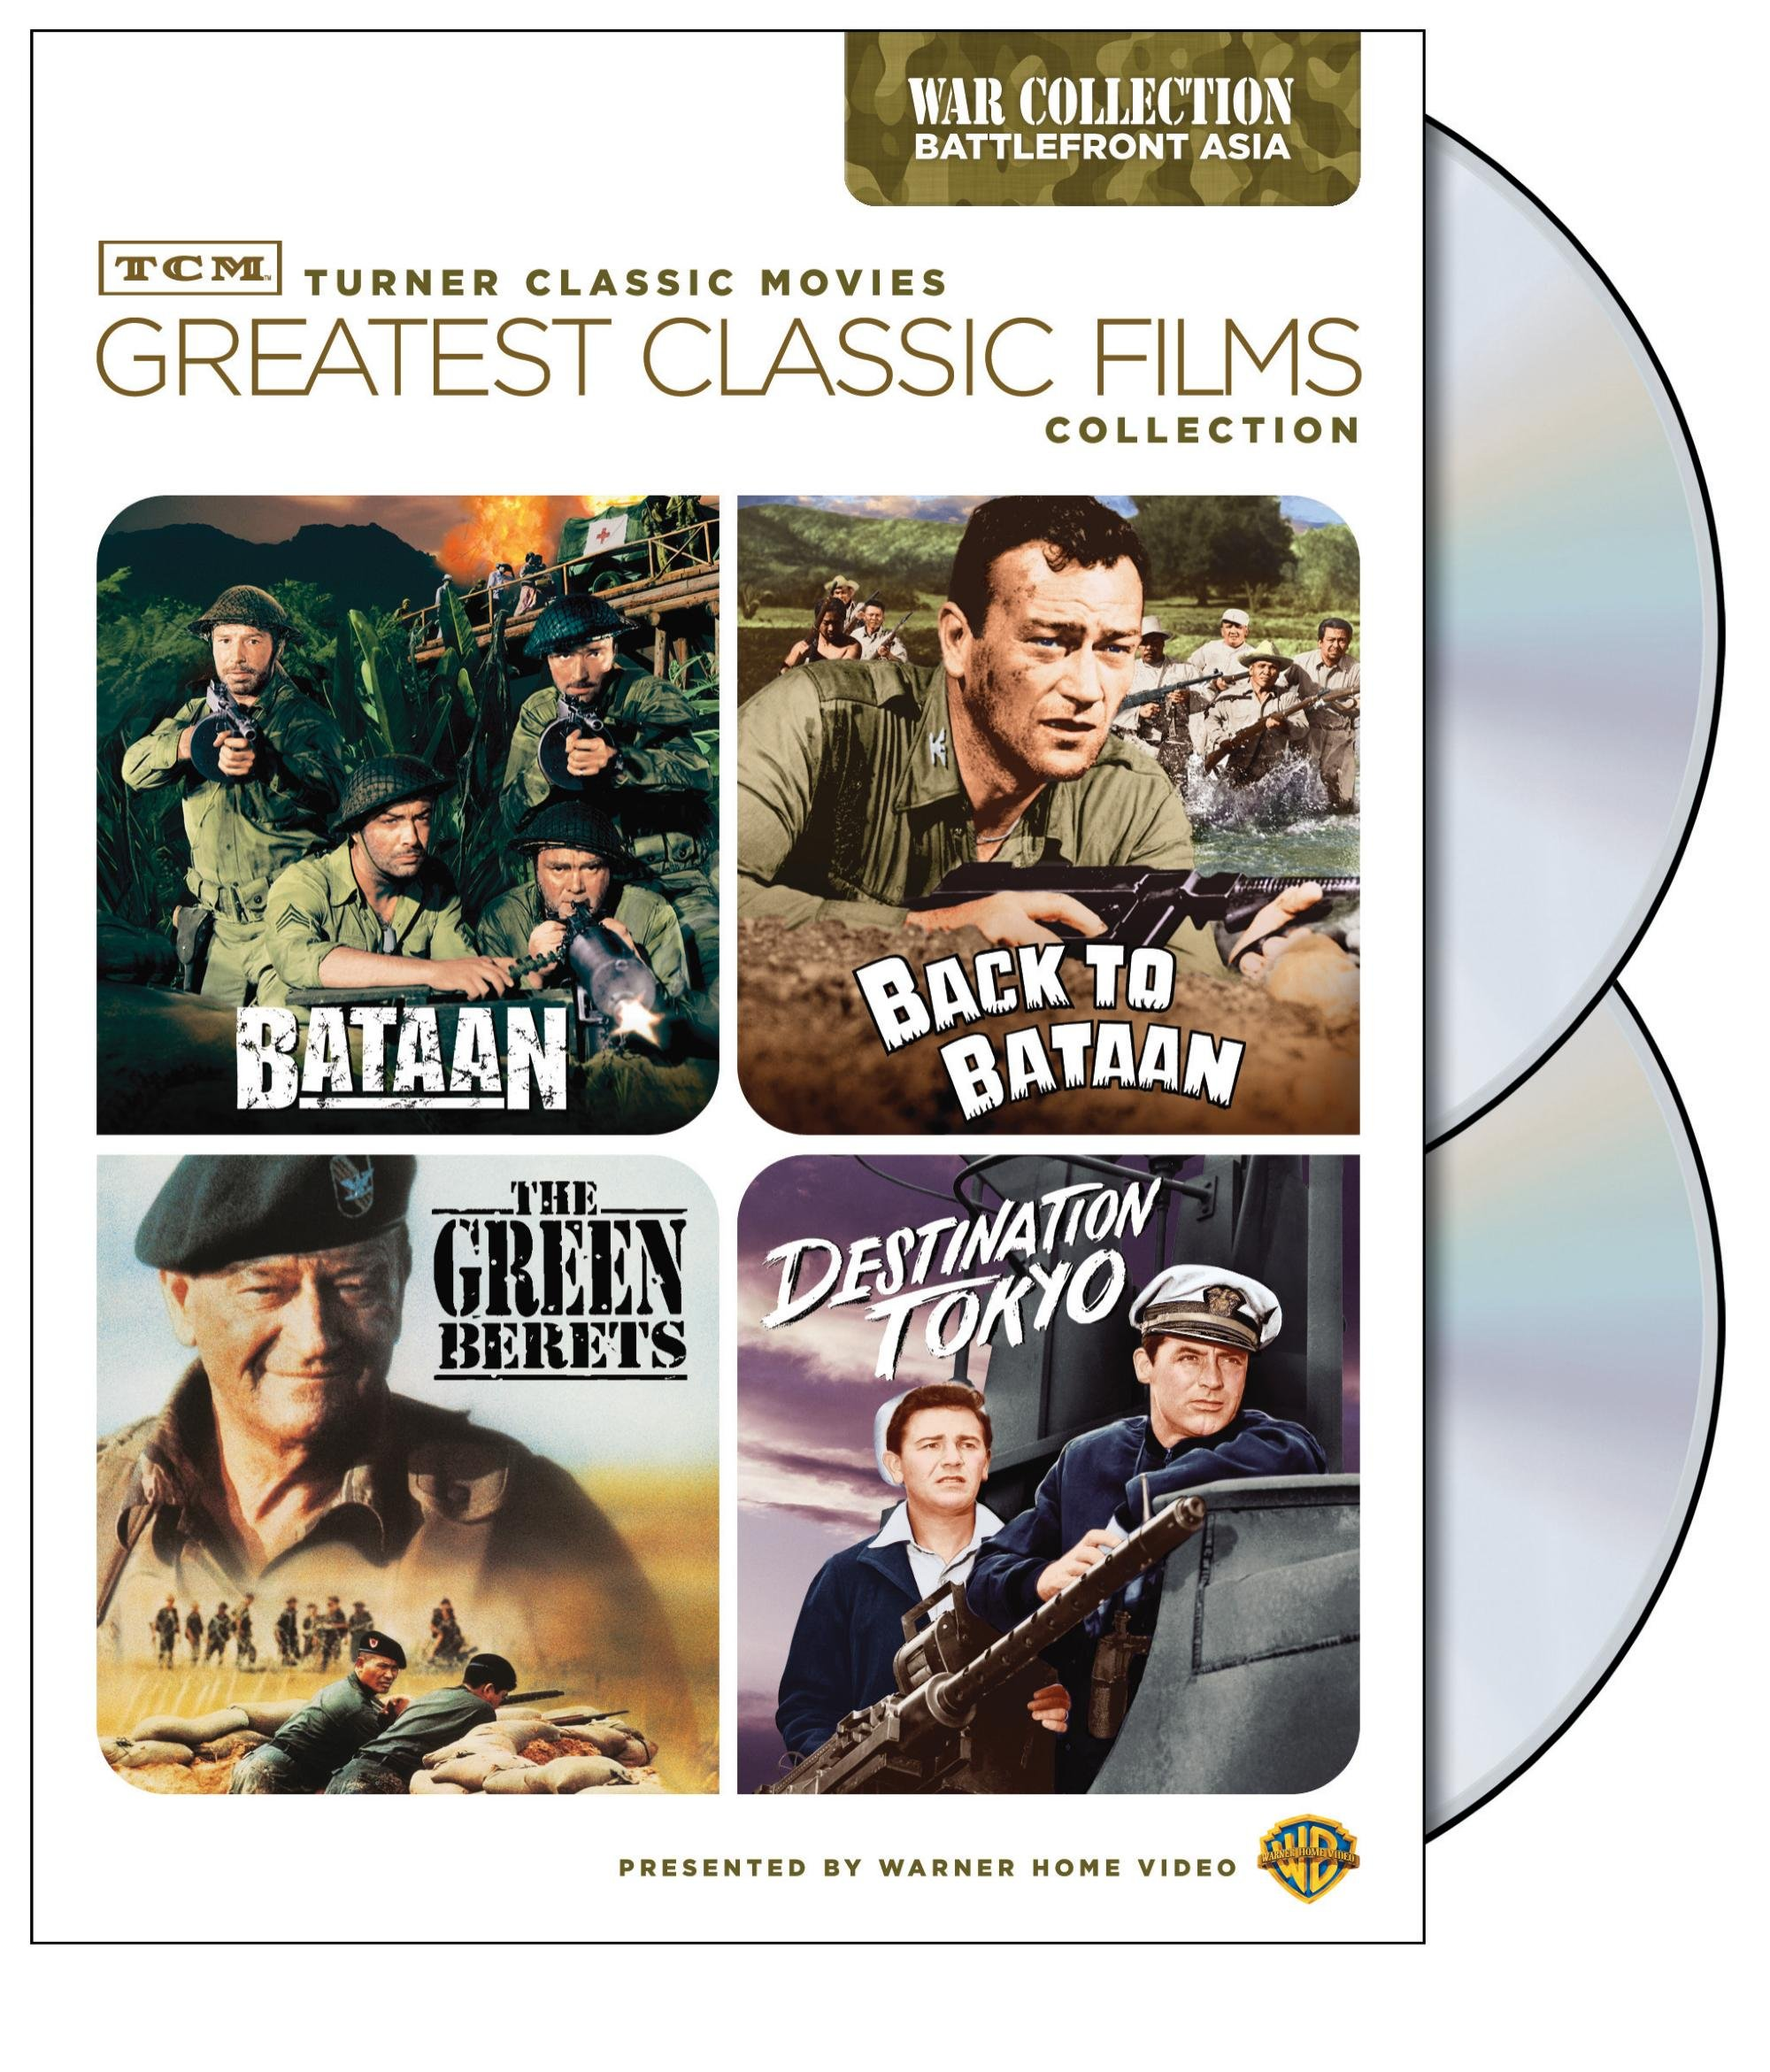 TCM Greatest Classic Films Collection: War - Battlefront Asia (Bataan / Back to Bataan / The Green Berets / Destination Tokyo)